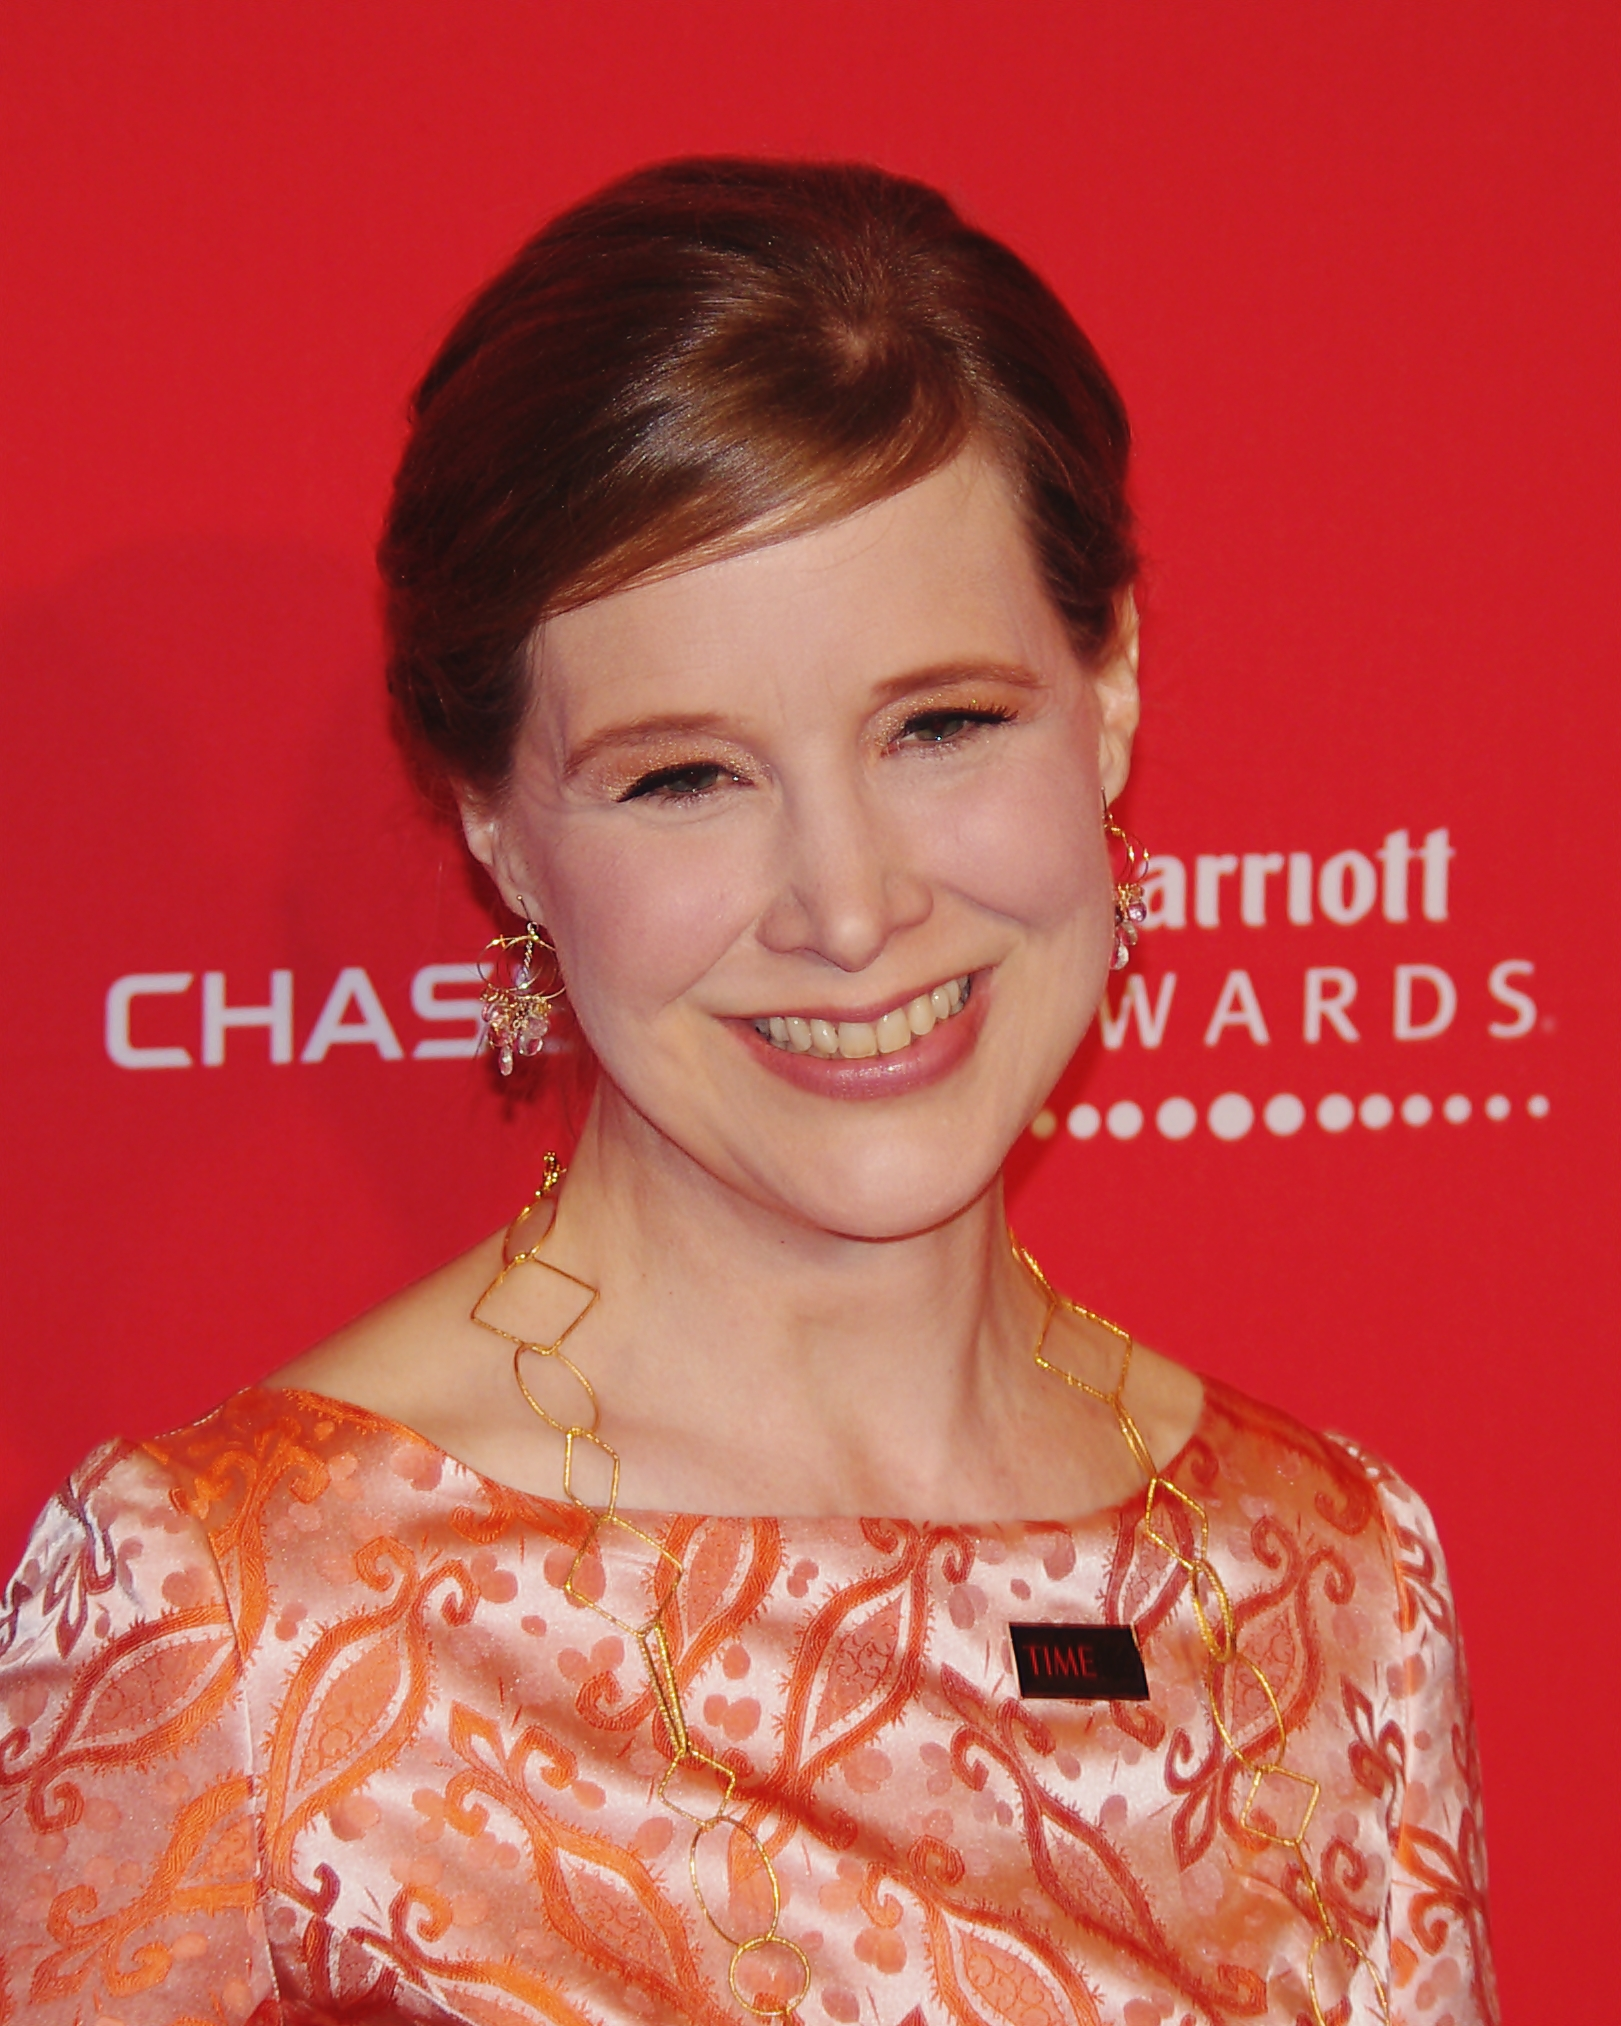 Ann Patchett Ann Patchett Wikipedia the free encyclopedia